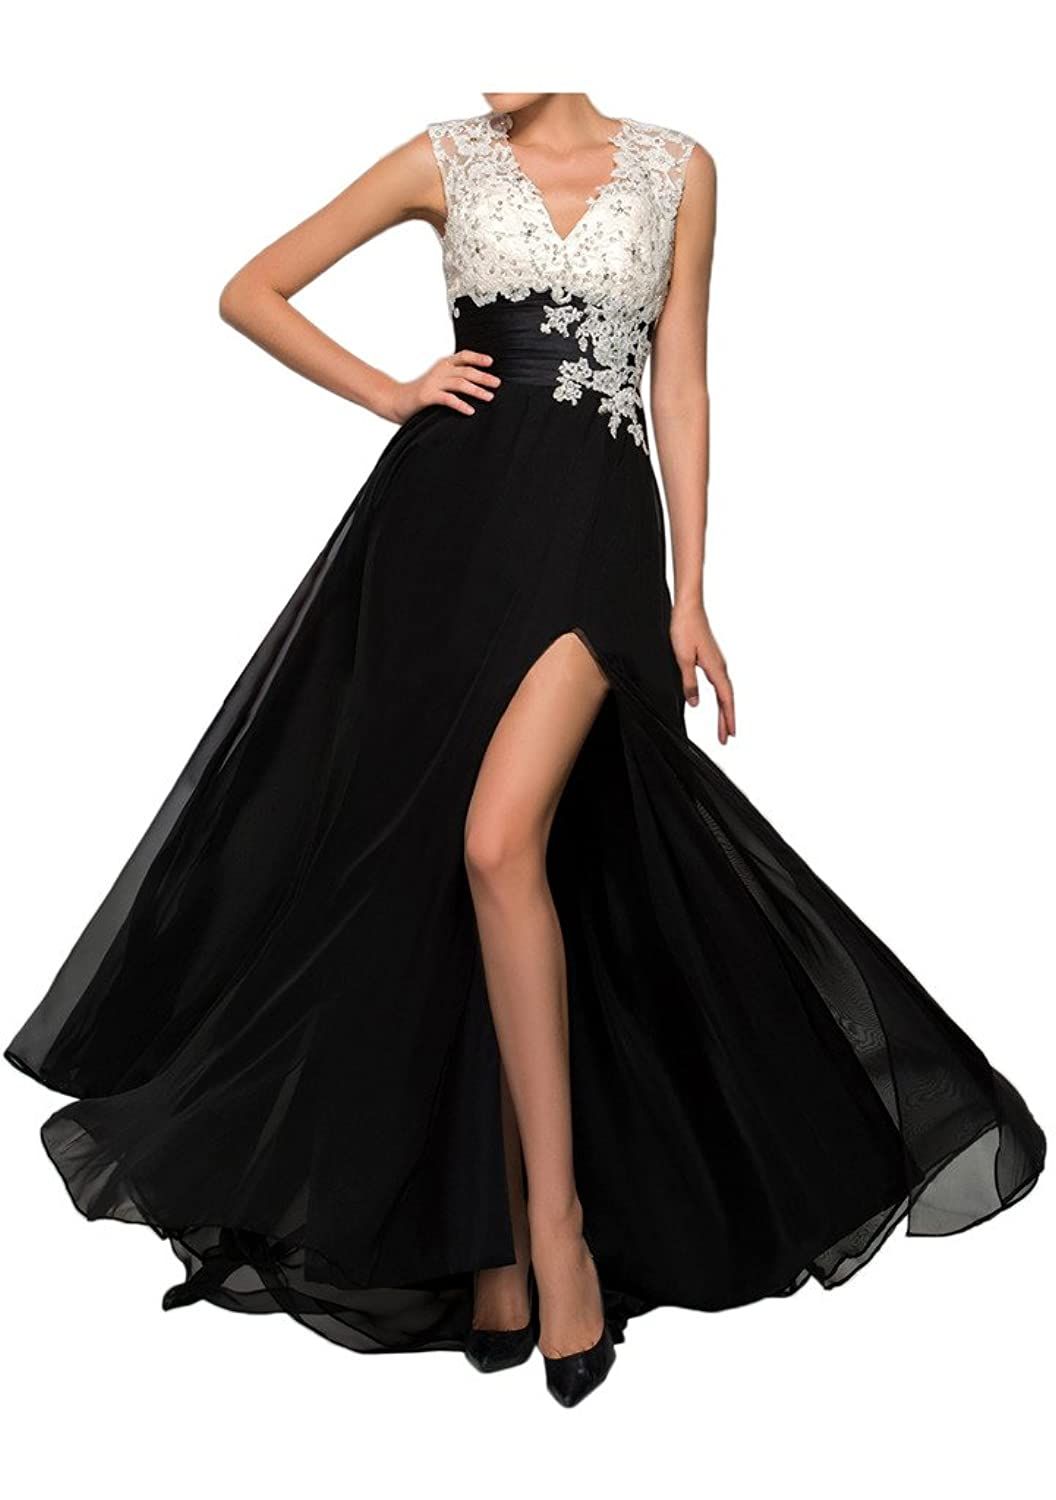 Gorgeous Bride Long Slit Lace and Chiffon Formal Evening Gown Open Back